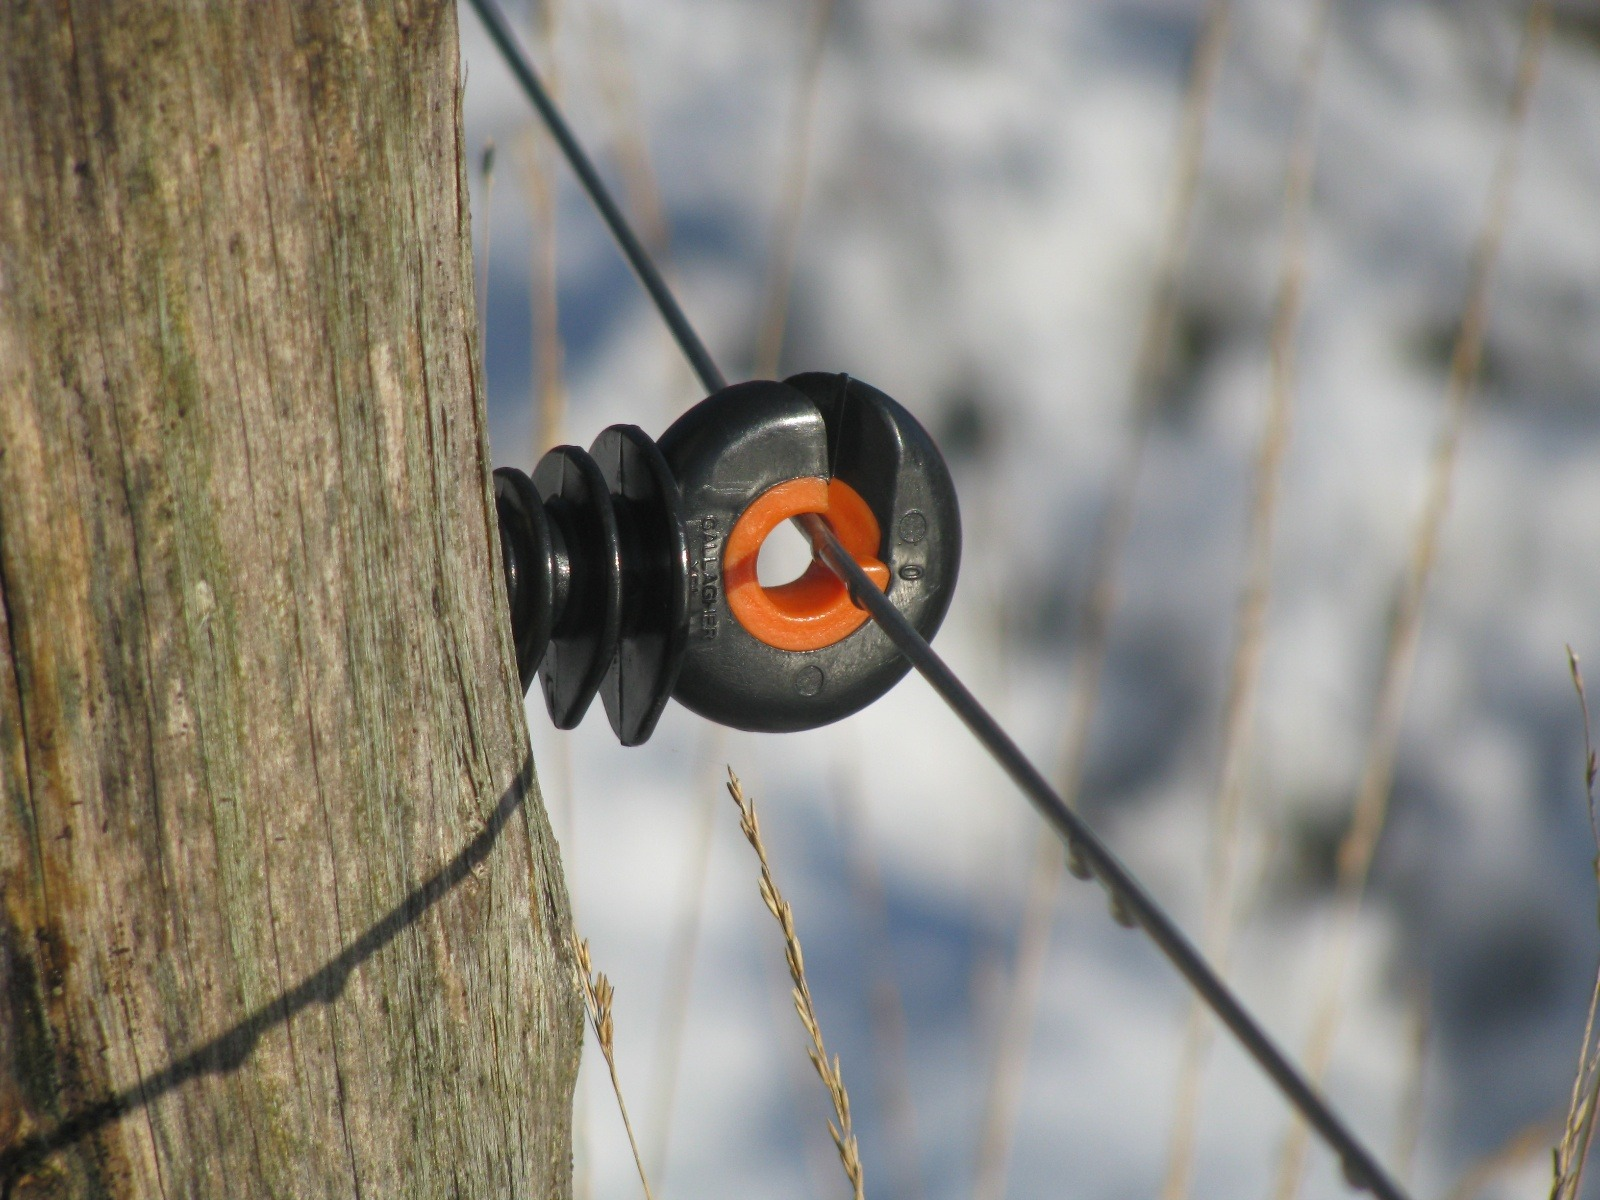 Fence Ring Insulator